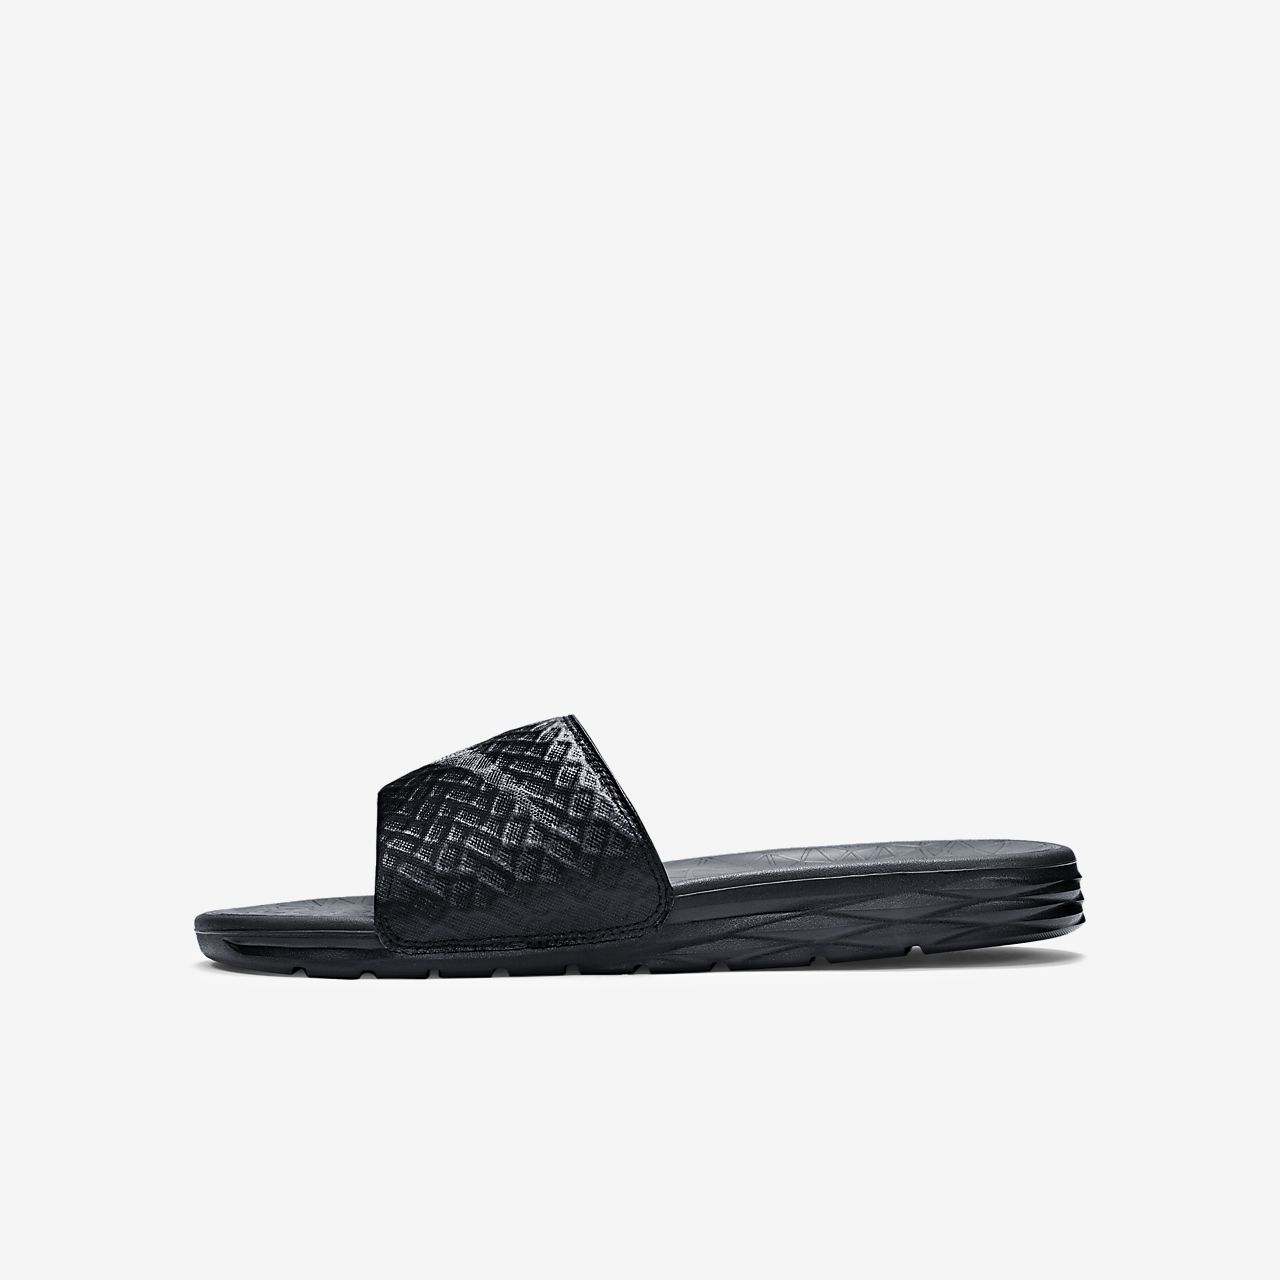 Nike Benassi Solarsoft 2 Men's Slide